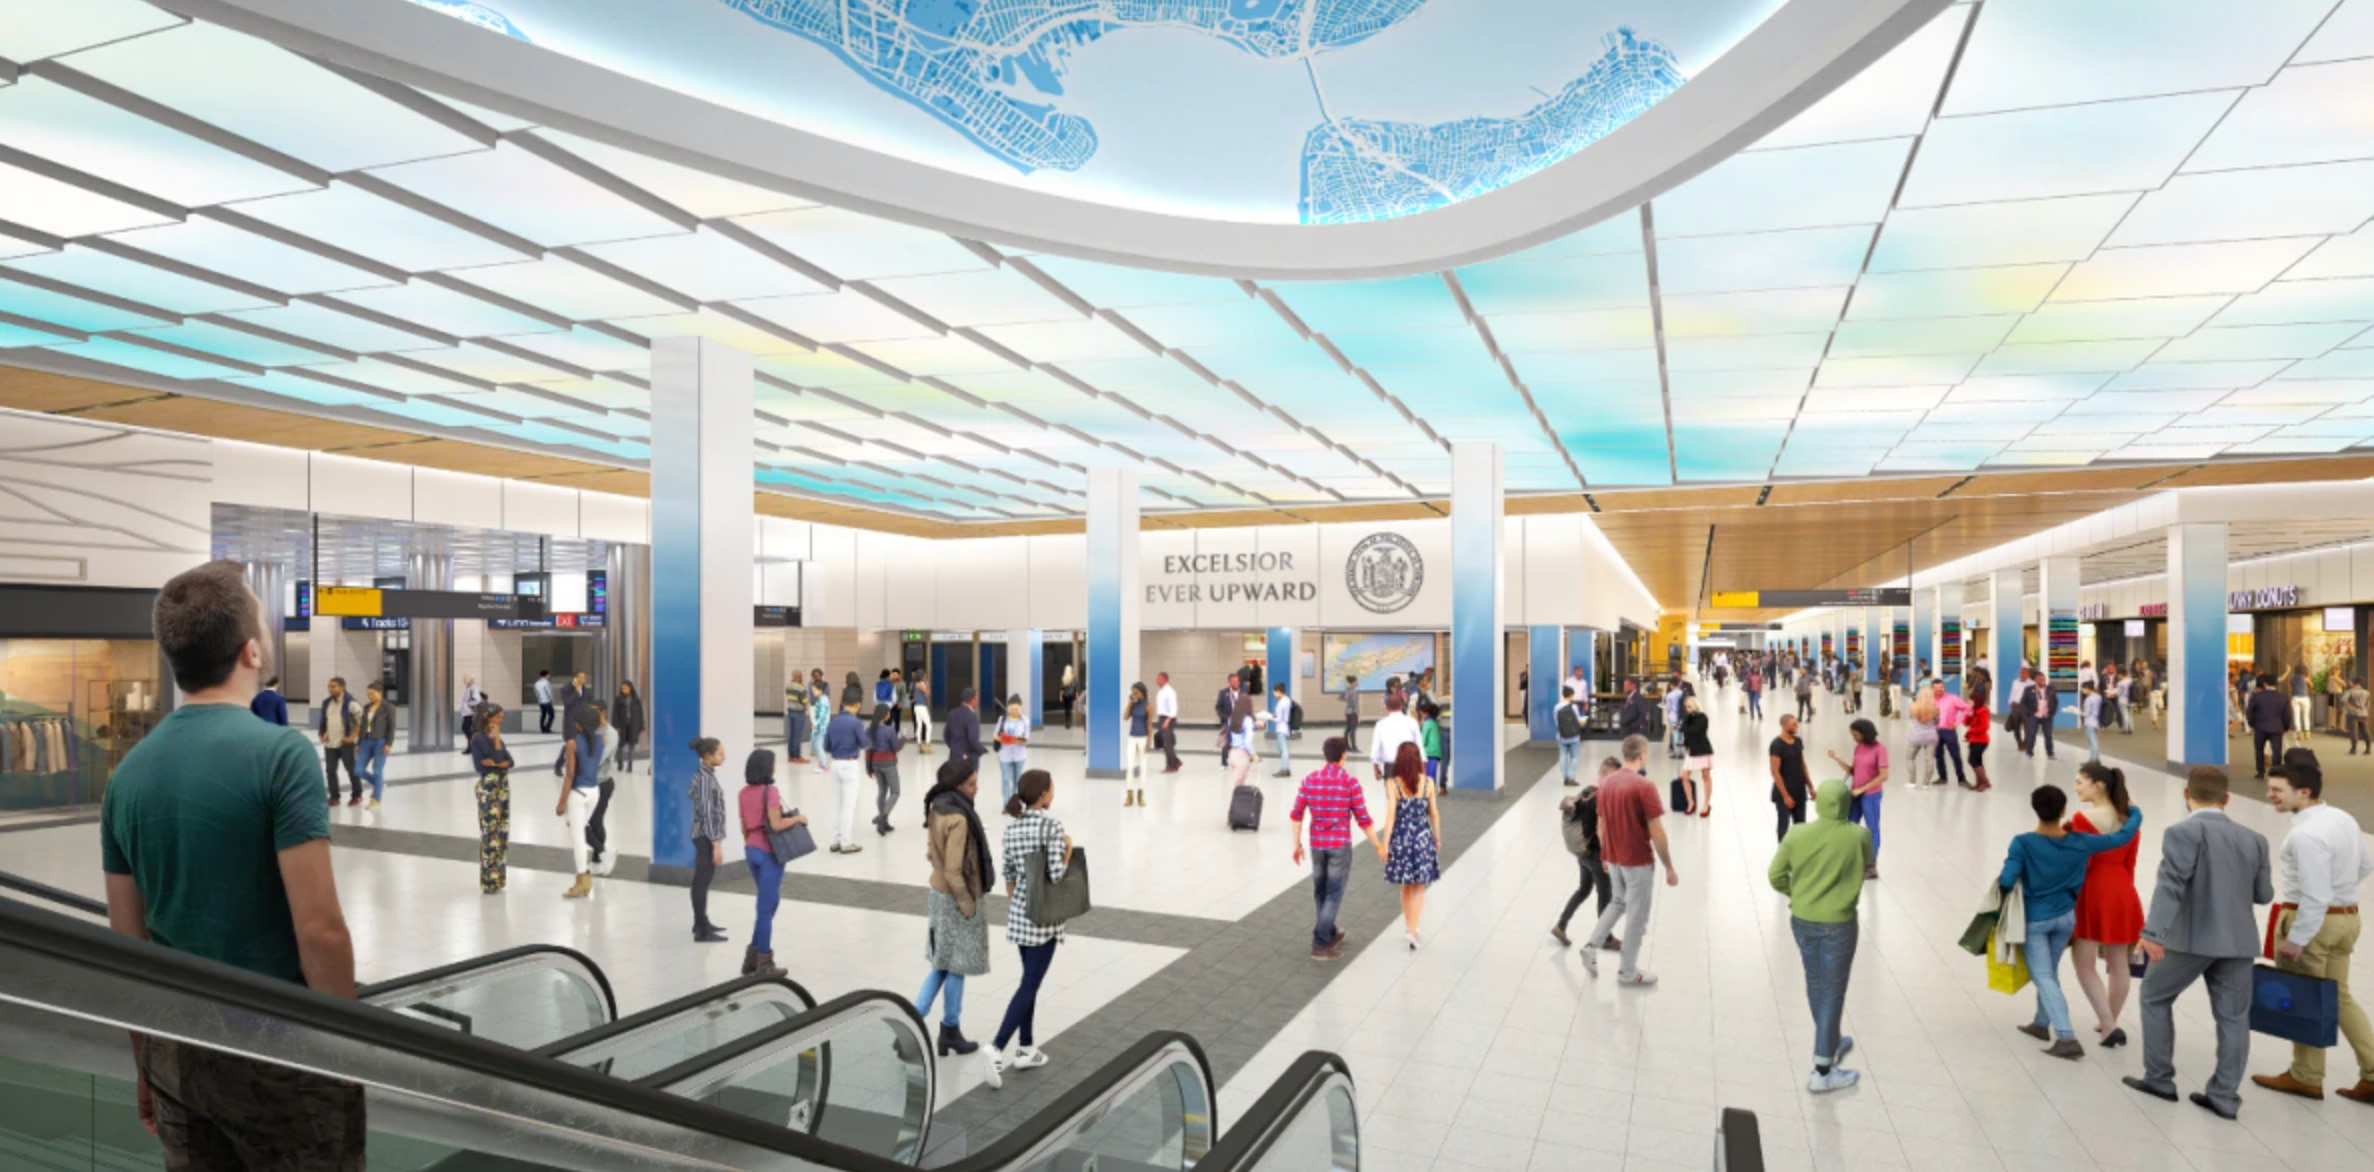 LIRR 33rd Street Concourse – opening early 2023